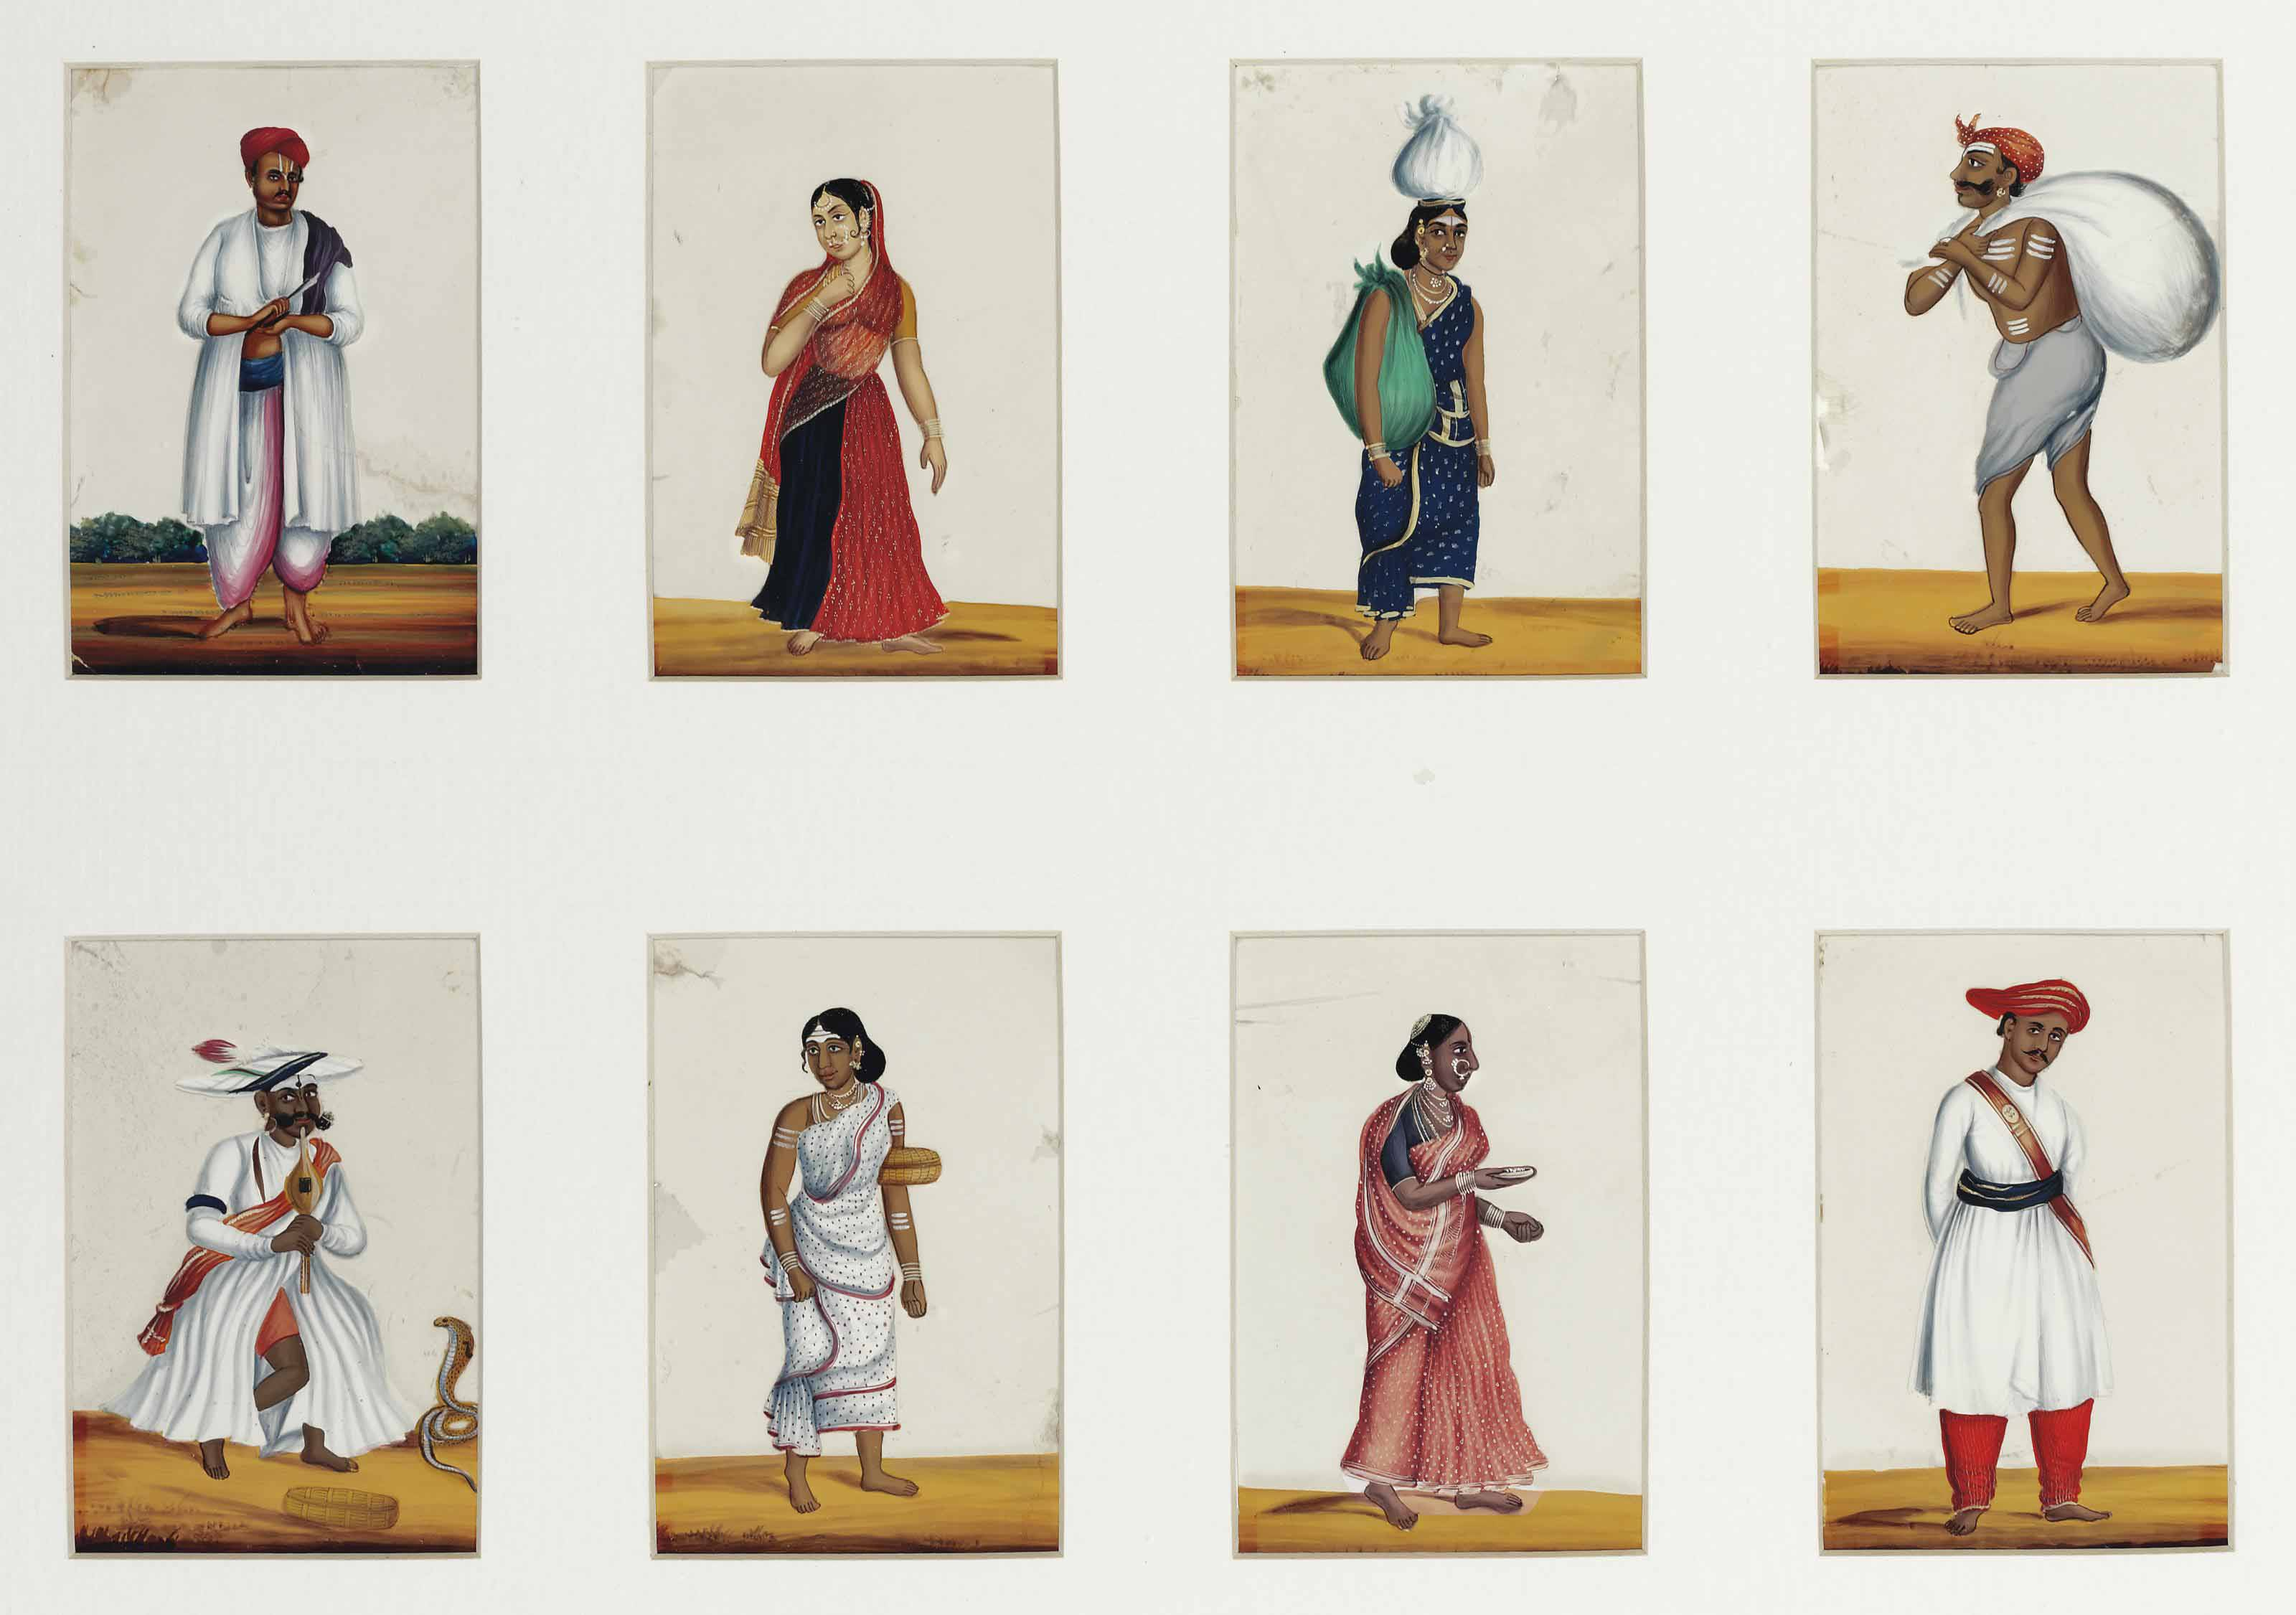 A COLLECTION OF TWENTY-FOUR STUDIES OF THE COSTUMES AND TRADES OF INDIA